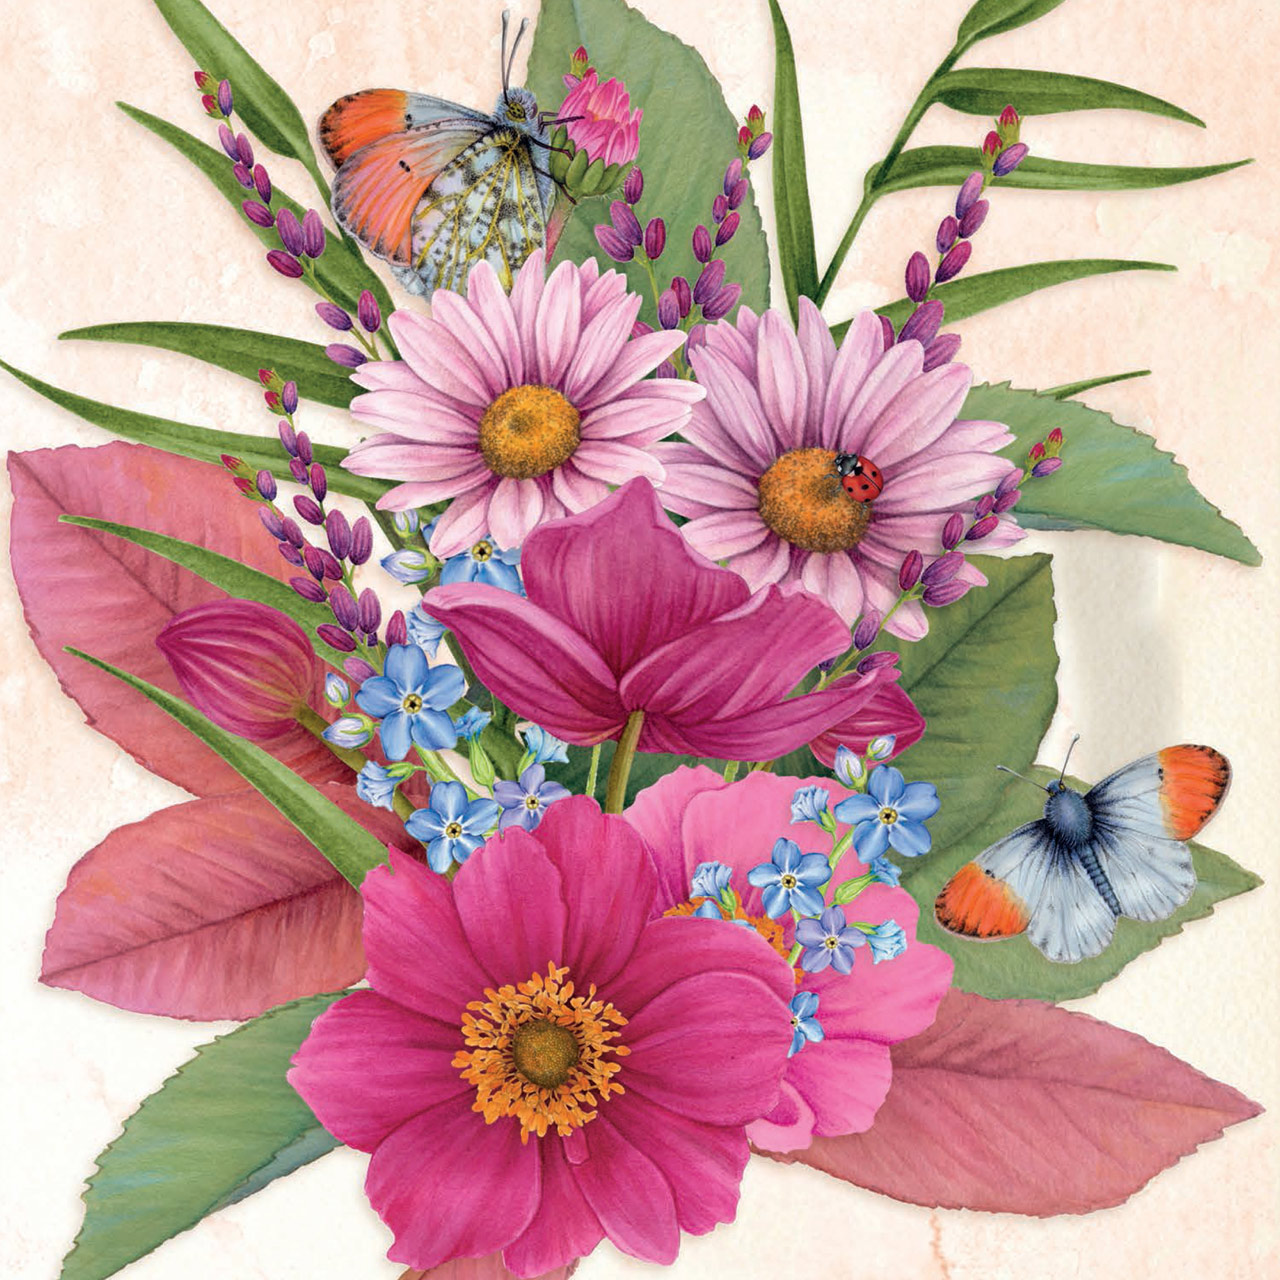 yume daisies and butterfly bouquet